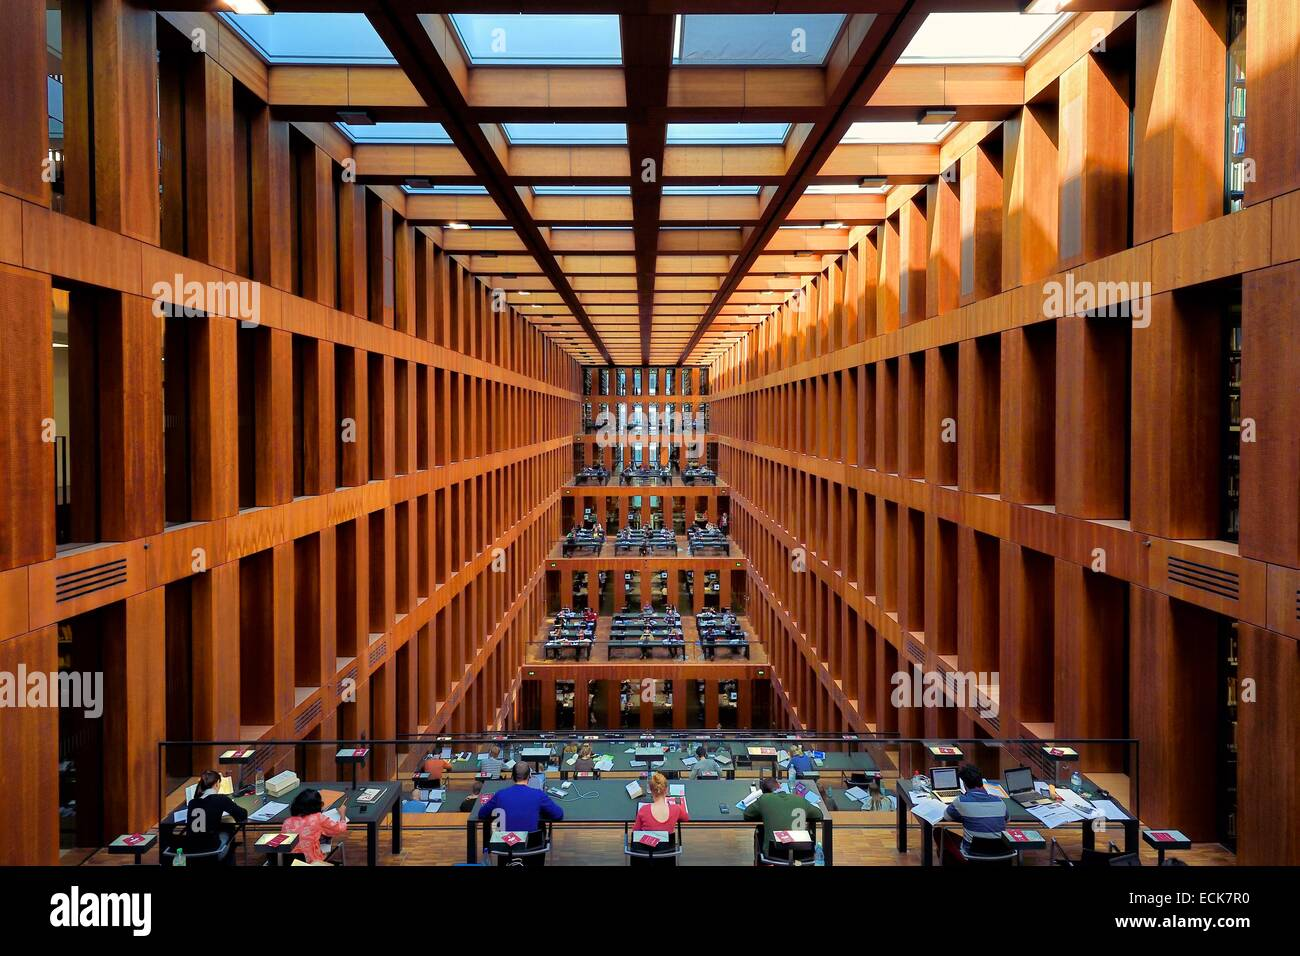 Germany, Berlin, Jacob und Wilhelm Grimm Zentrum, the Humboldt University library, built by Swiss architect Max - Stock Image